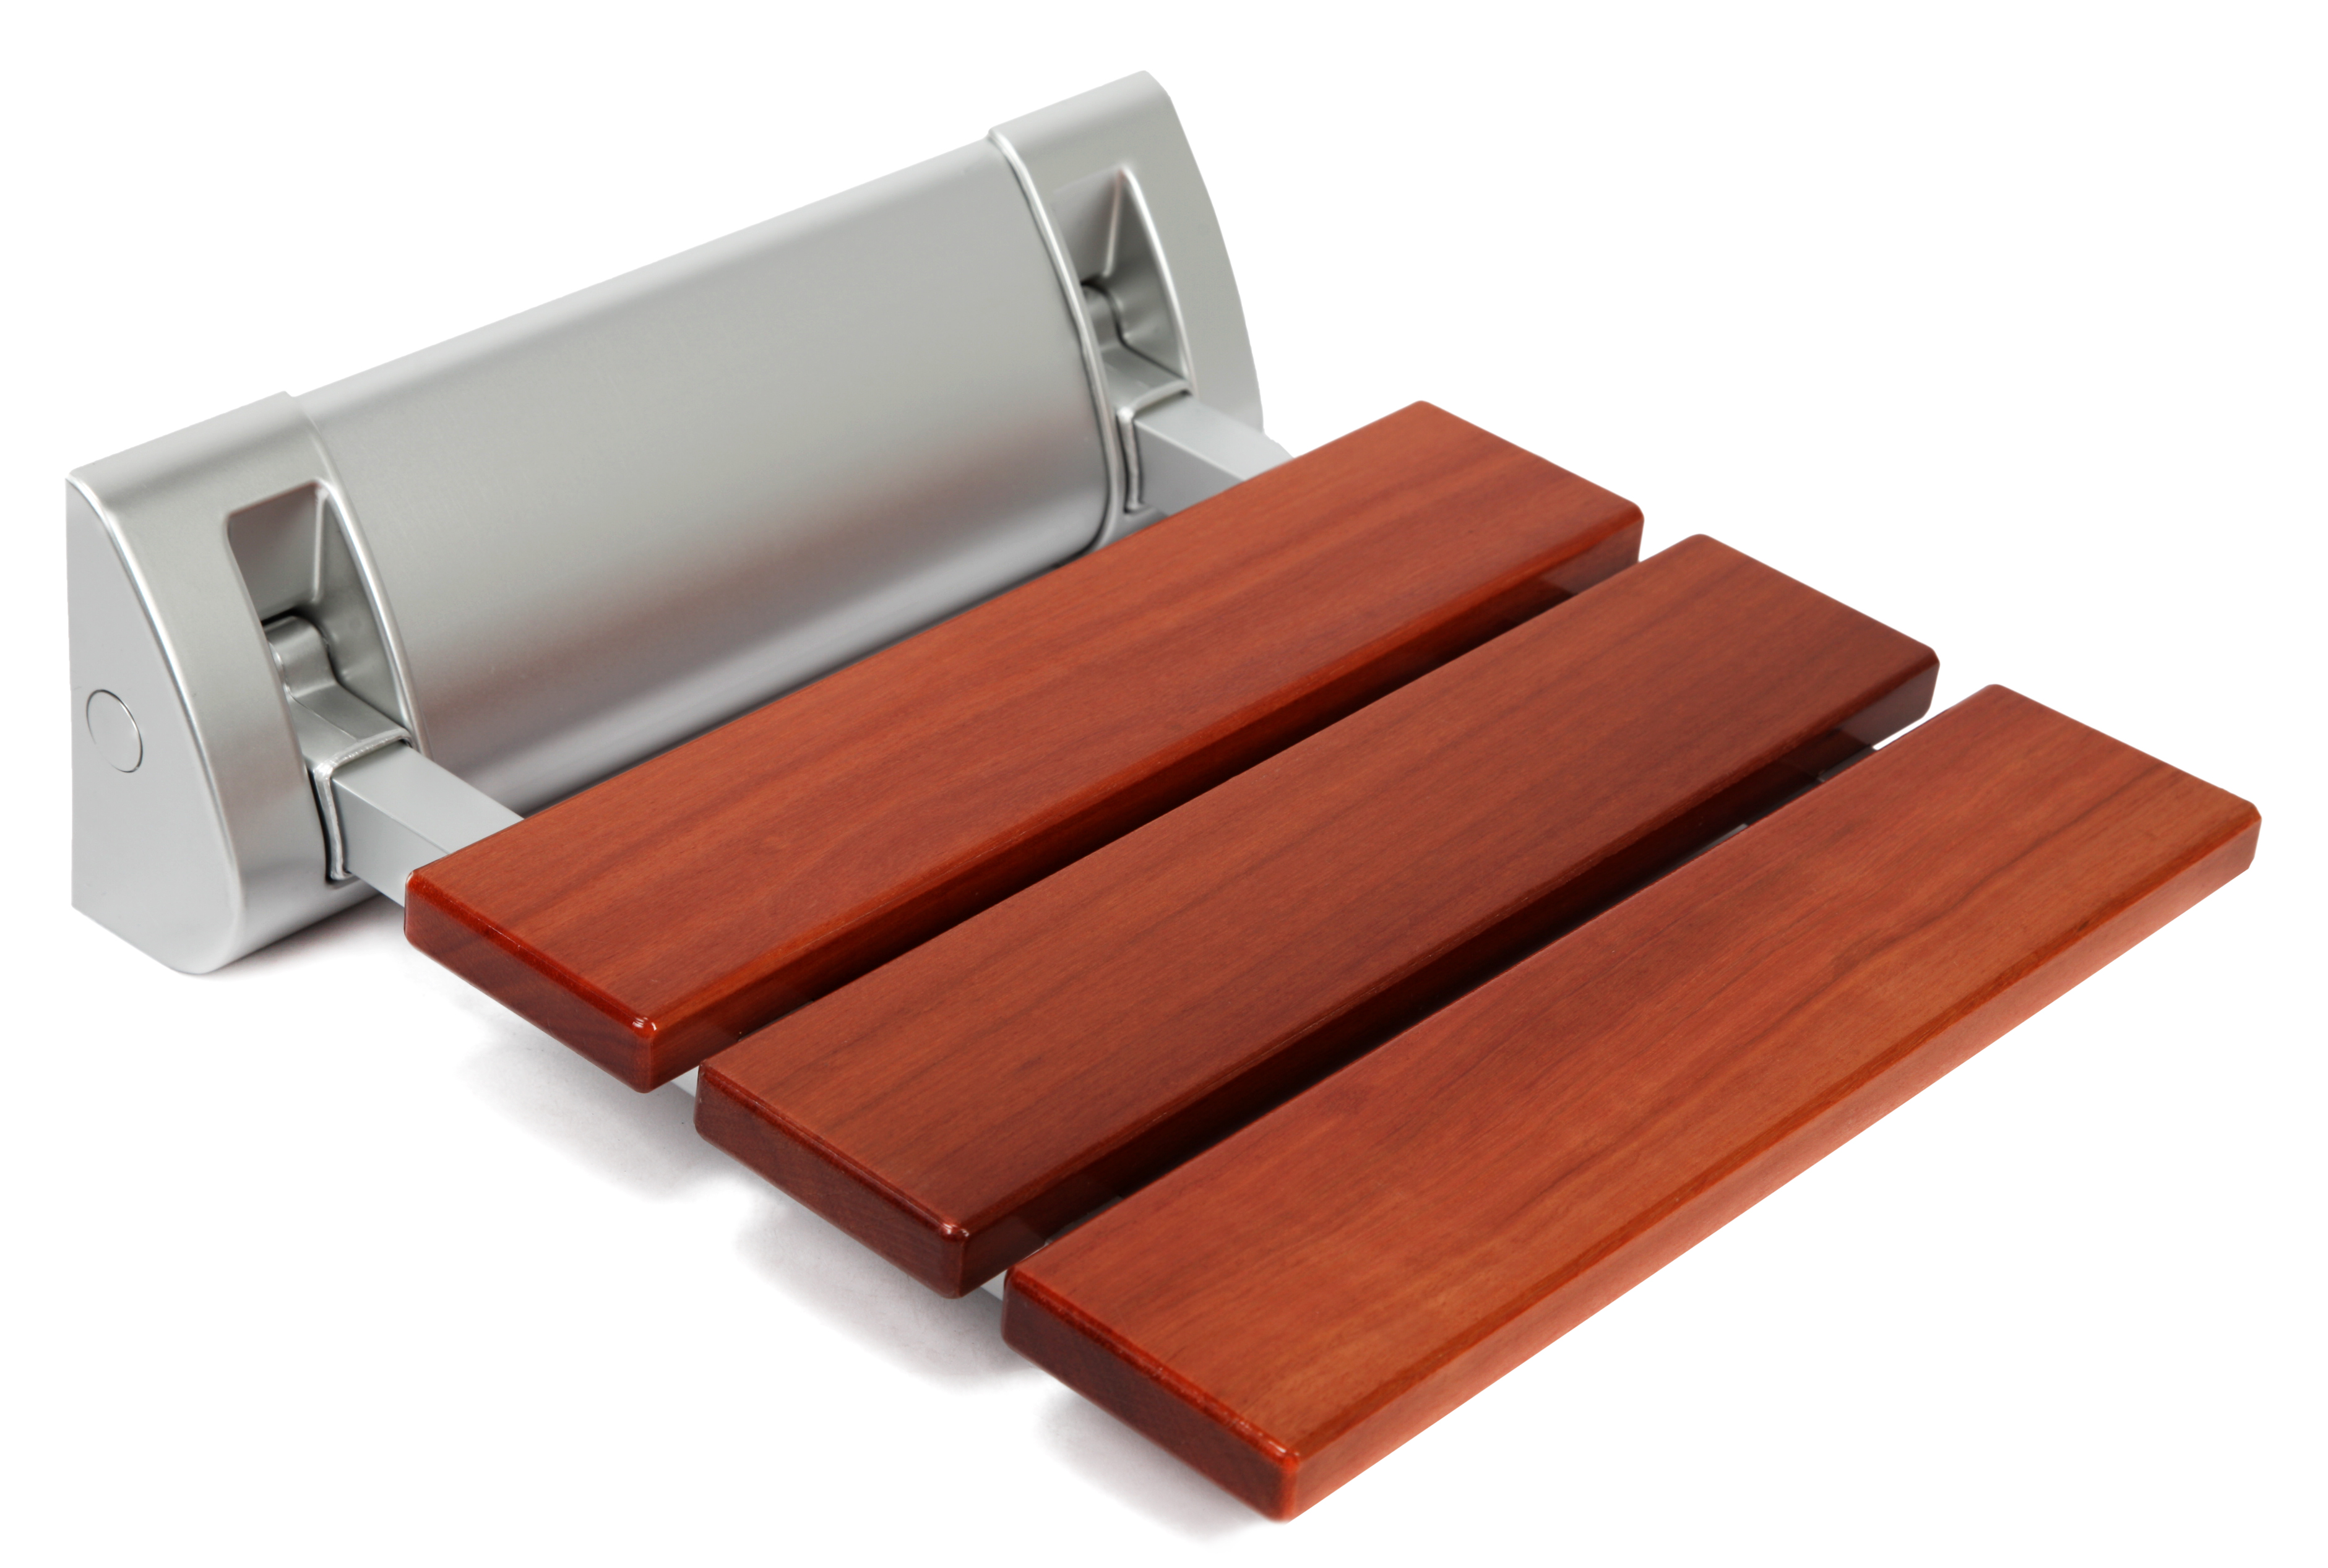 Kenley Folding Shower Seat Wooden Wall Mounted Bench